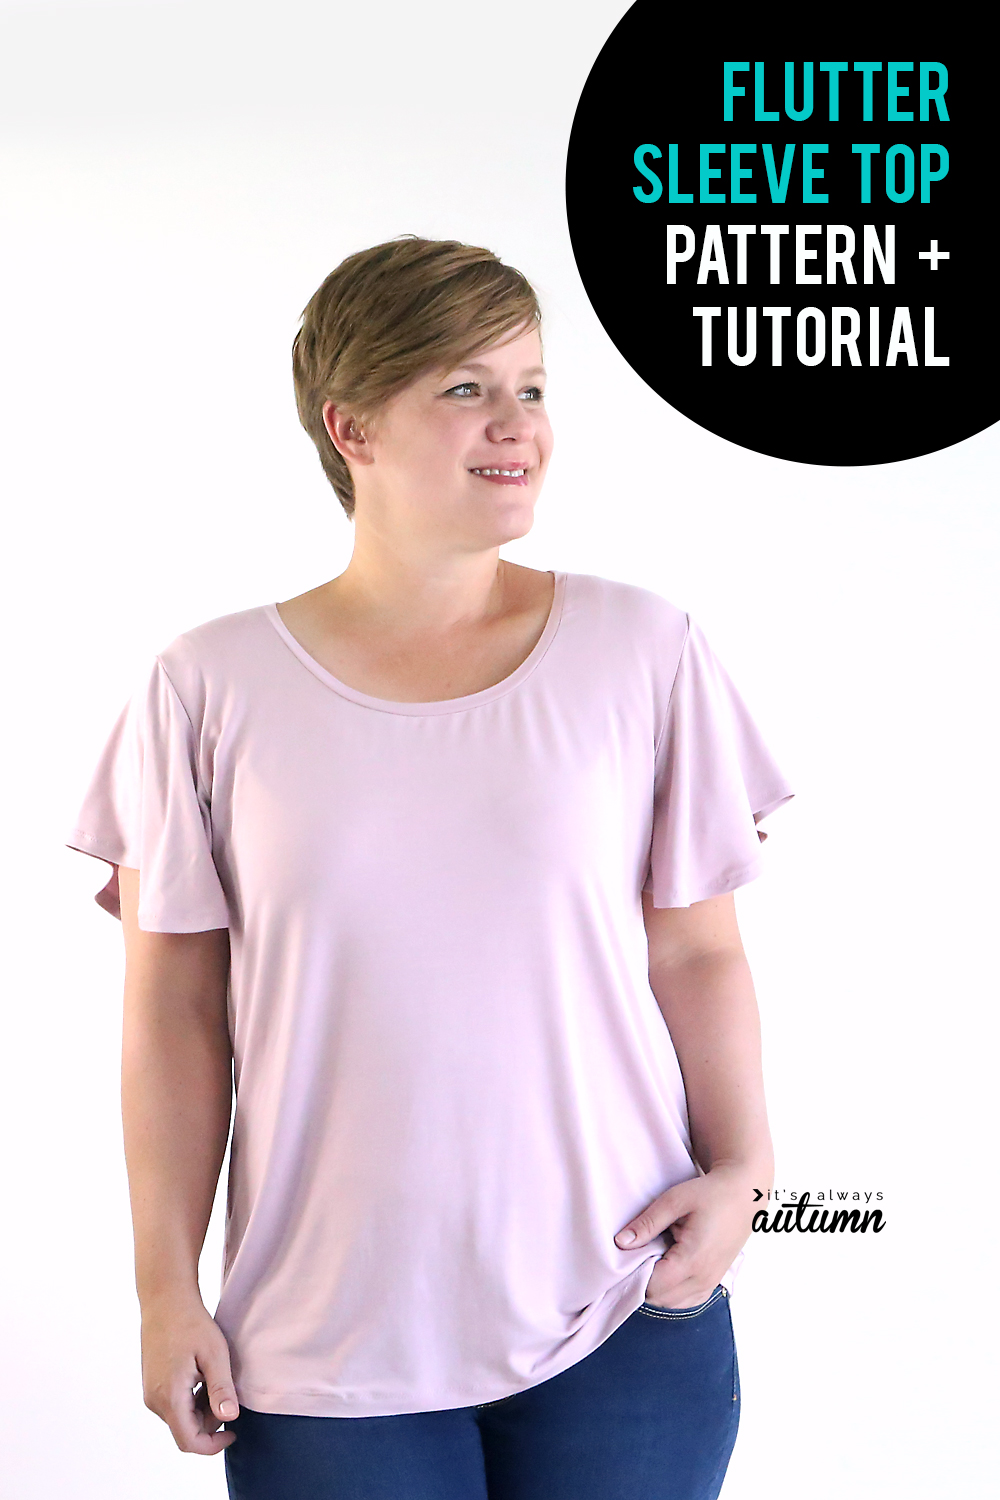 Click through to download the sewing pattern for this cute women's top with flutter sleeves.